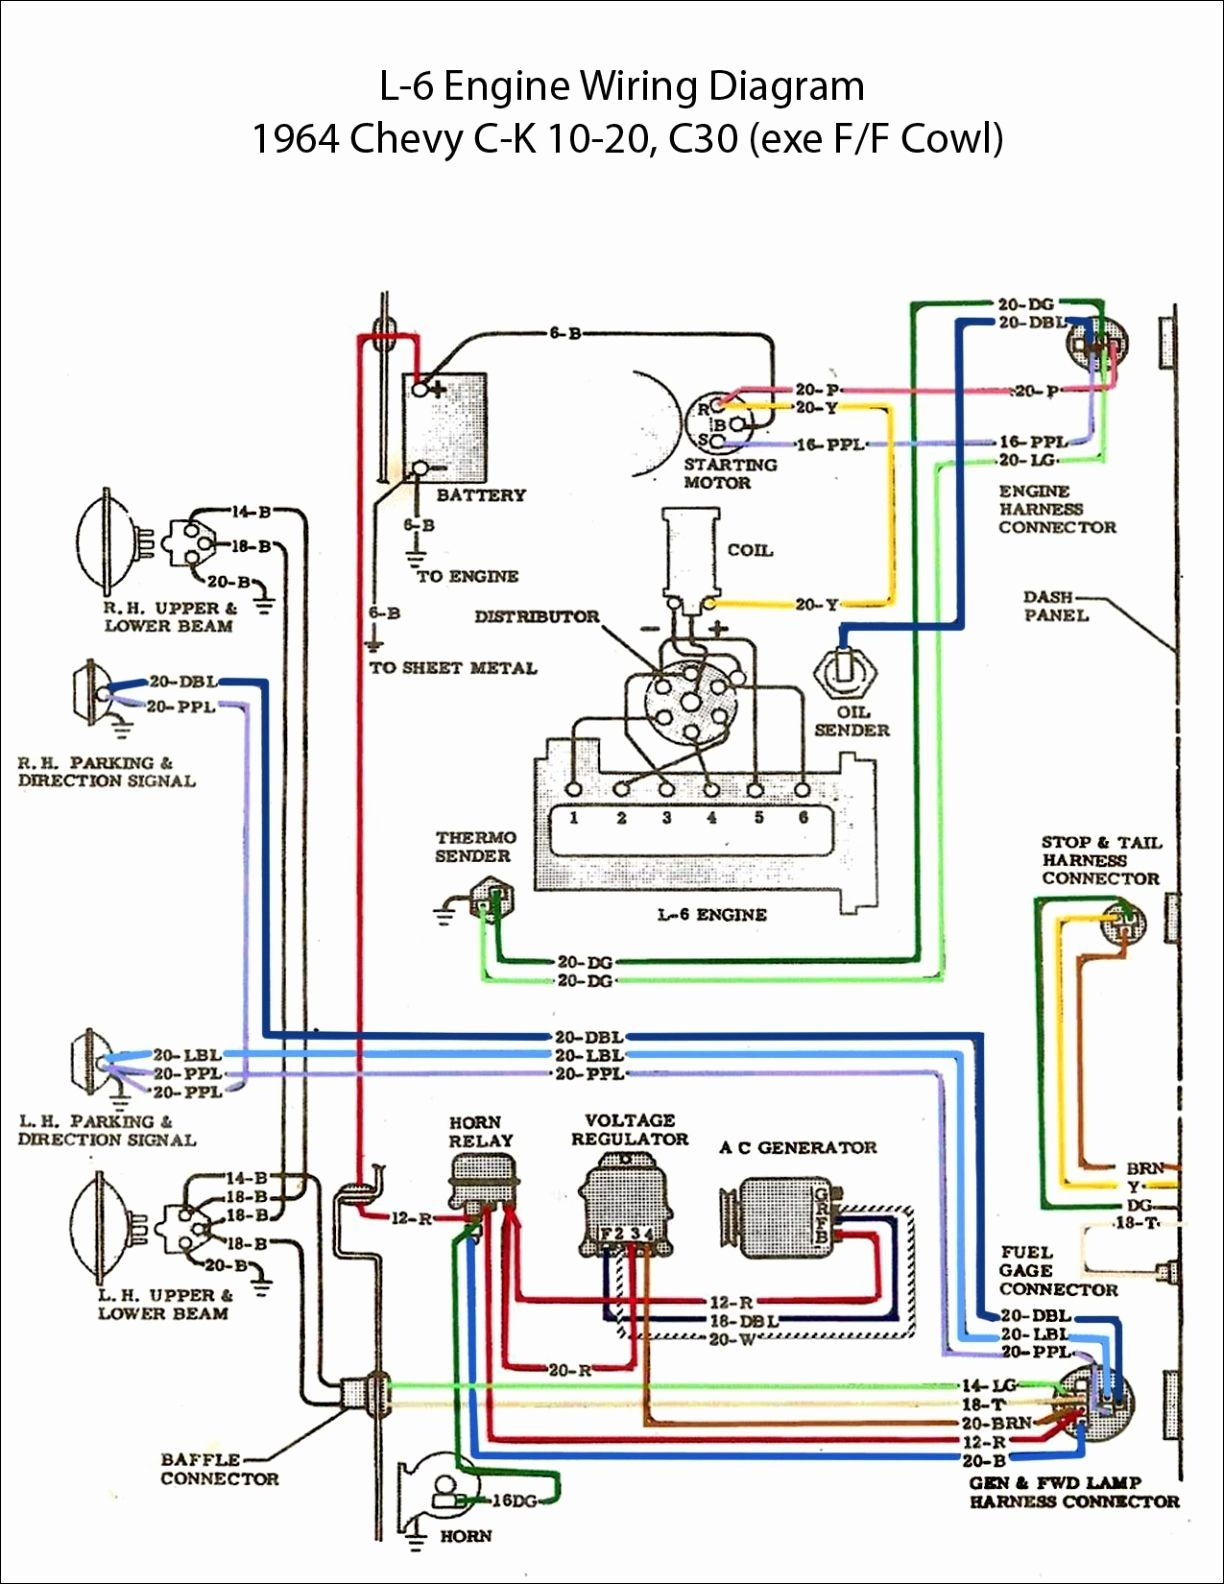 Wiring Diagram For Trailer Brakes 2000 Chevy Silverado Wiring Diagram Color Code Awesome 2001 Chevy Chevy Trucks 1963 Chevy Truck Electrical Diagram